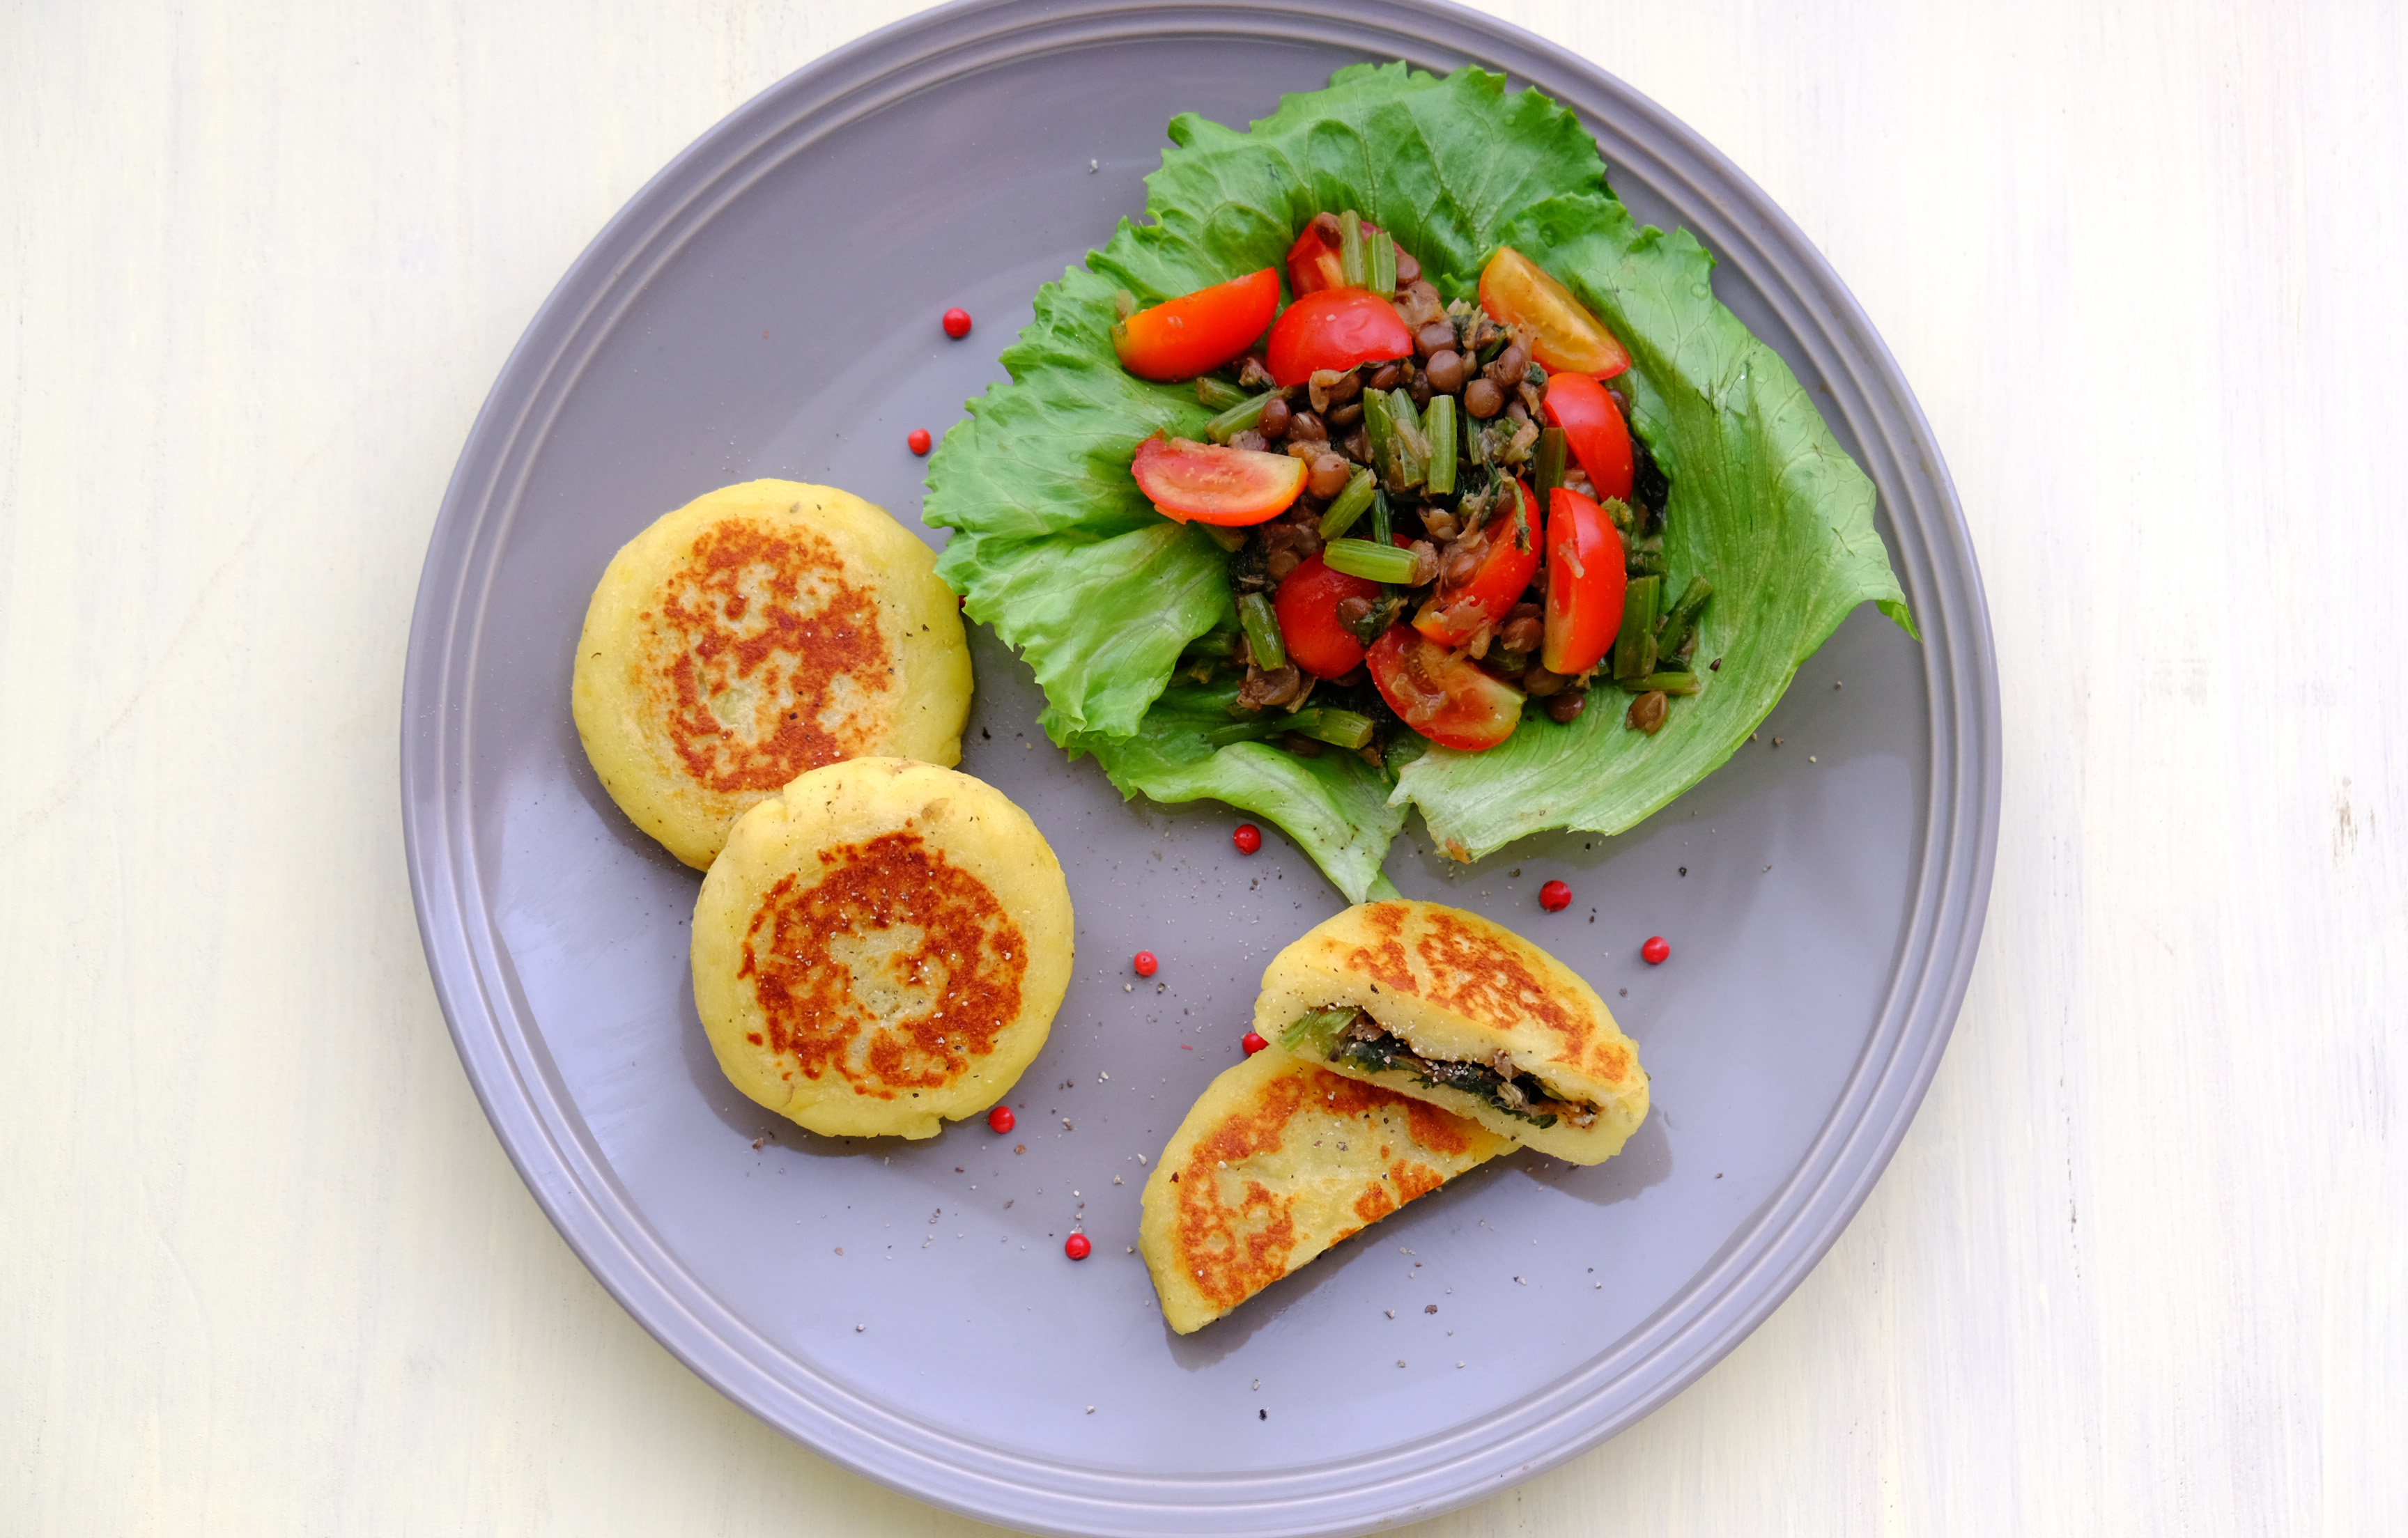 山ほうれん草のお焼き スパイス風味 Vegan Potato Cakes with Stuffed Spiced Vegetables